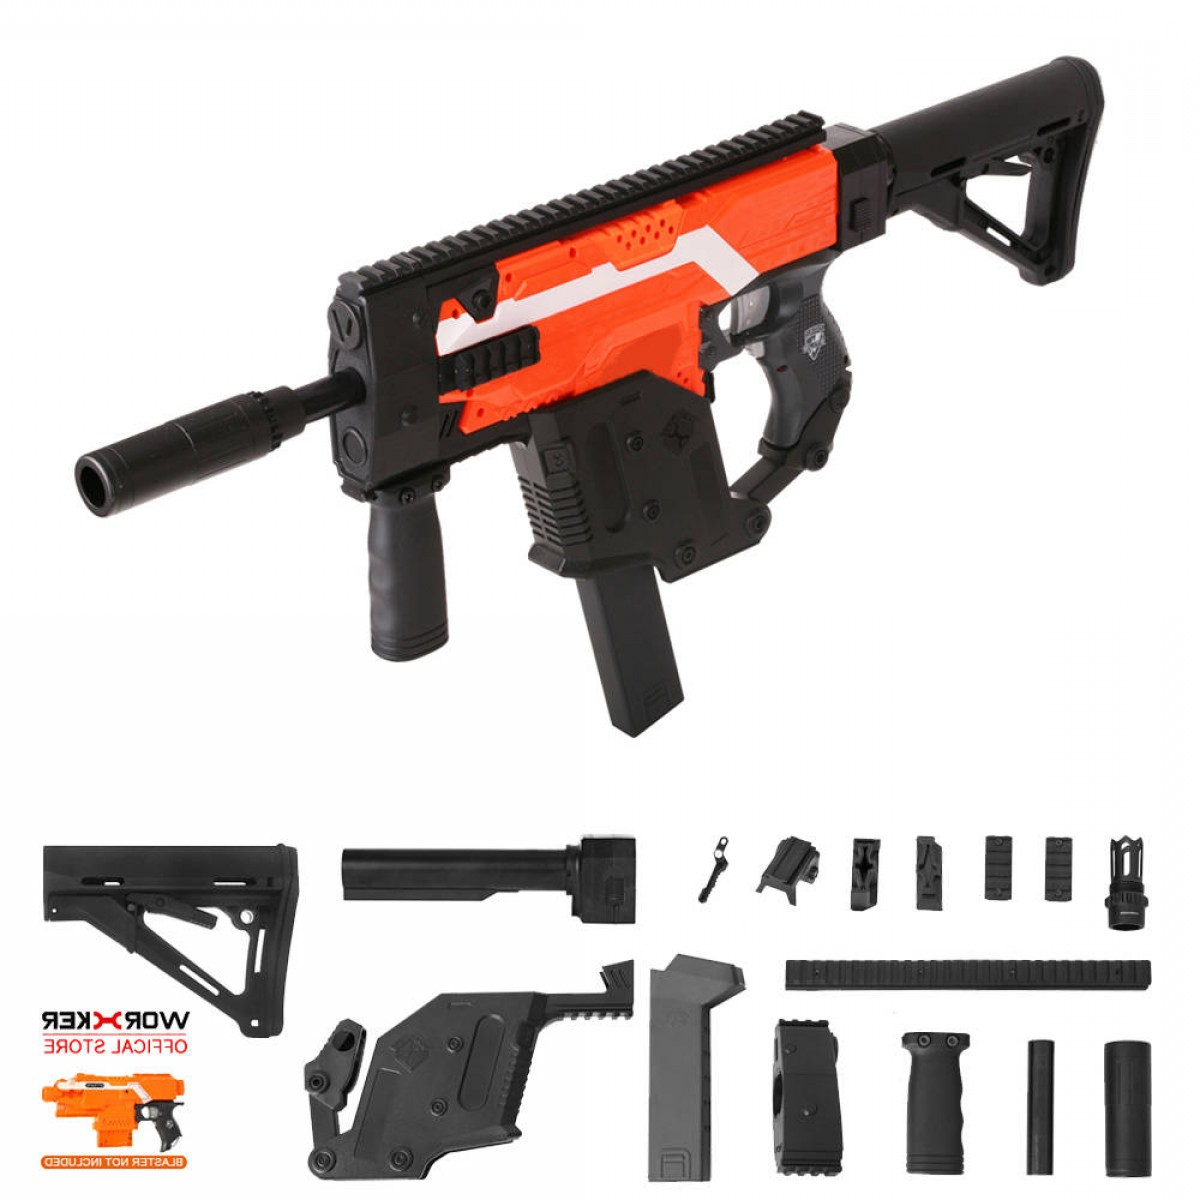 Painted Kriss Vector: Worker Mod Kriss Vector Imitation Kit